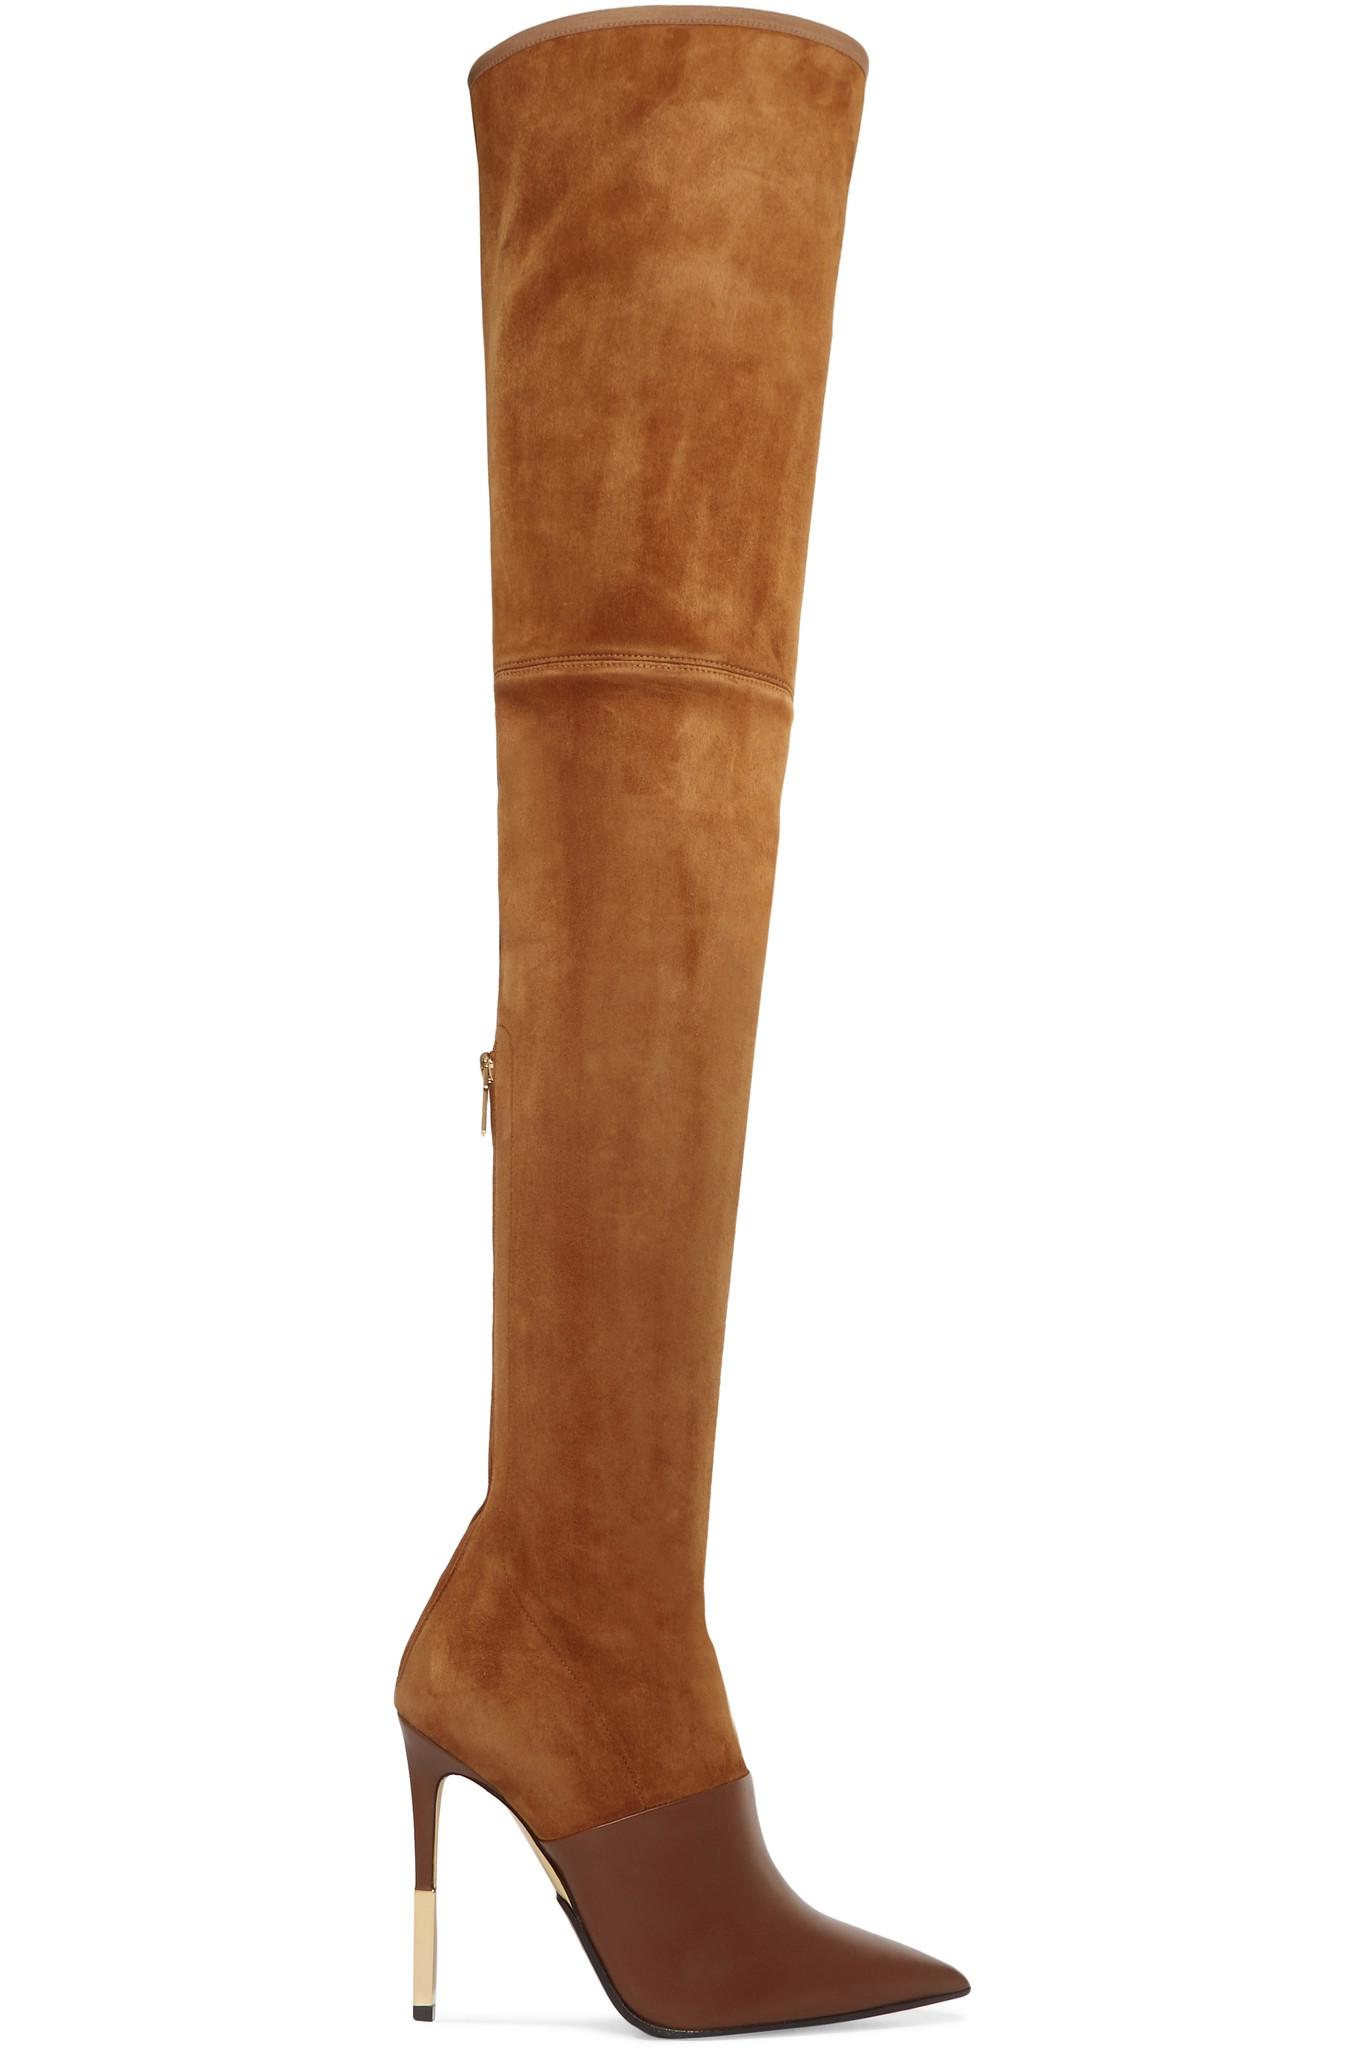 2280ebf6af2 Balmain Amazon Suede And Leather Over-the-knee Boots in Brown - Lyst